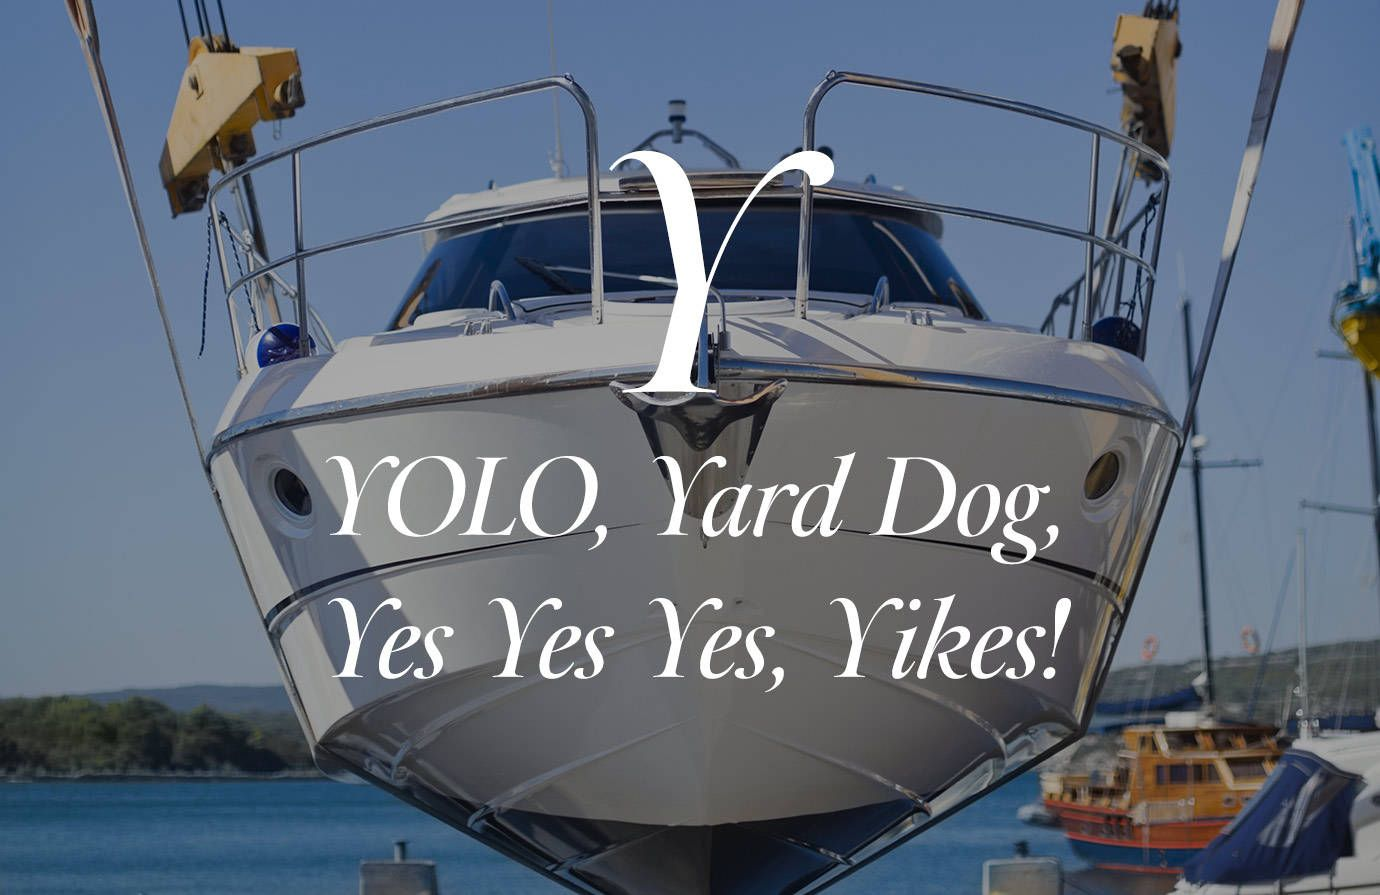 Best Boat Names Ever List From A To Z Clever Ideas For Cool - Clever pontoon boat names